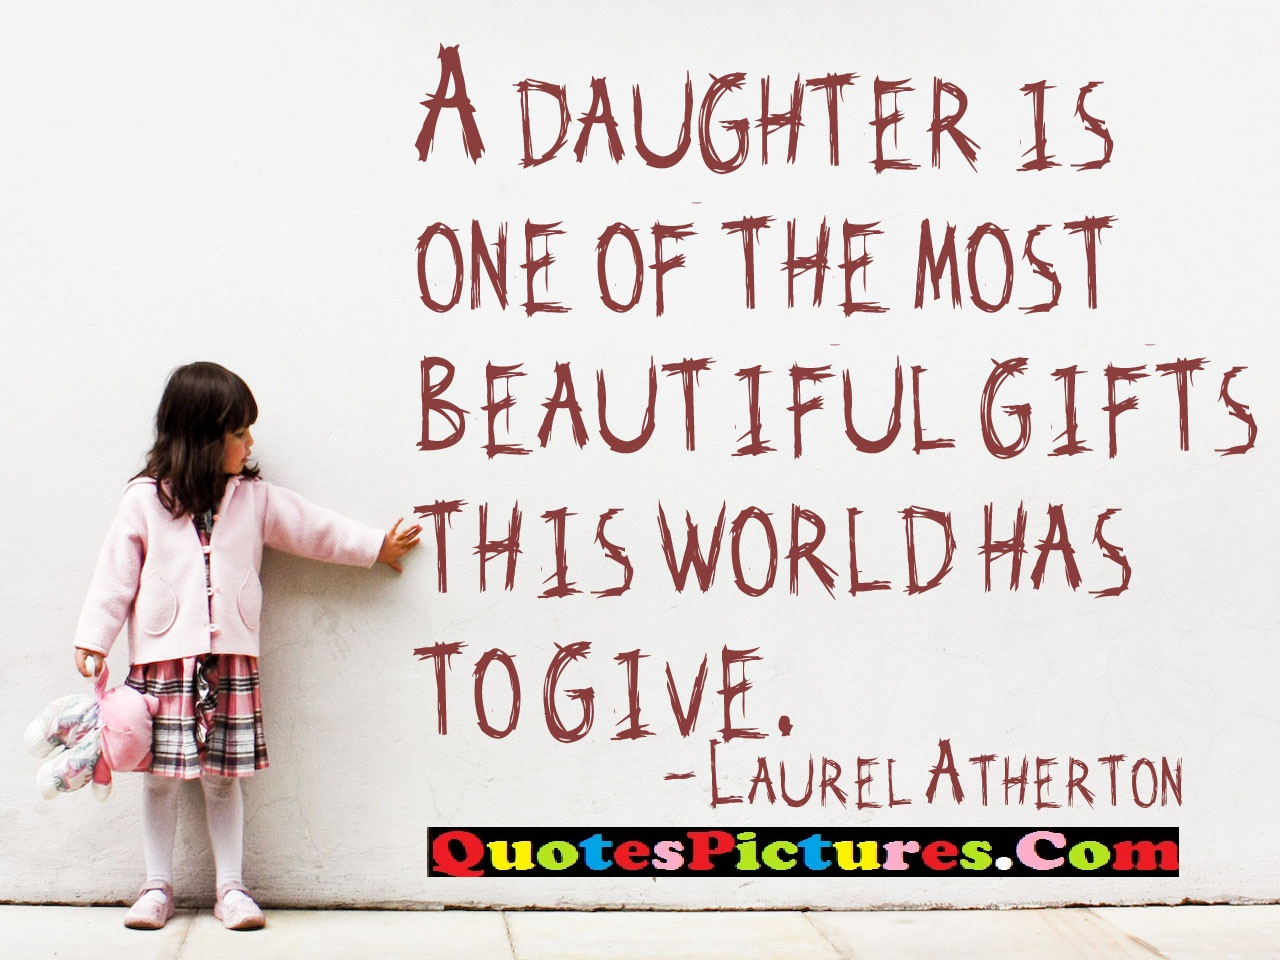 Daughter Quote - A Daughter Is One The Most Beautiful Gifts This World Has To Give. - Laurel Atherton